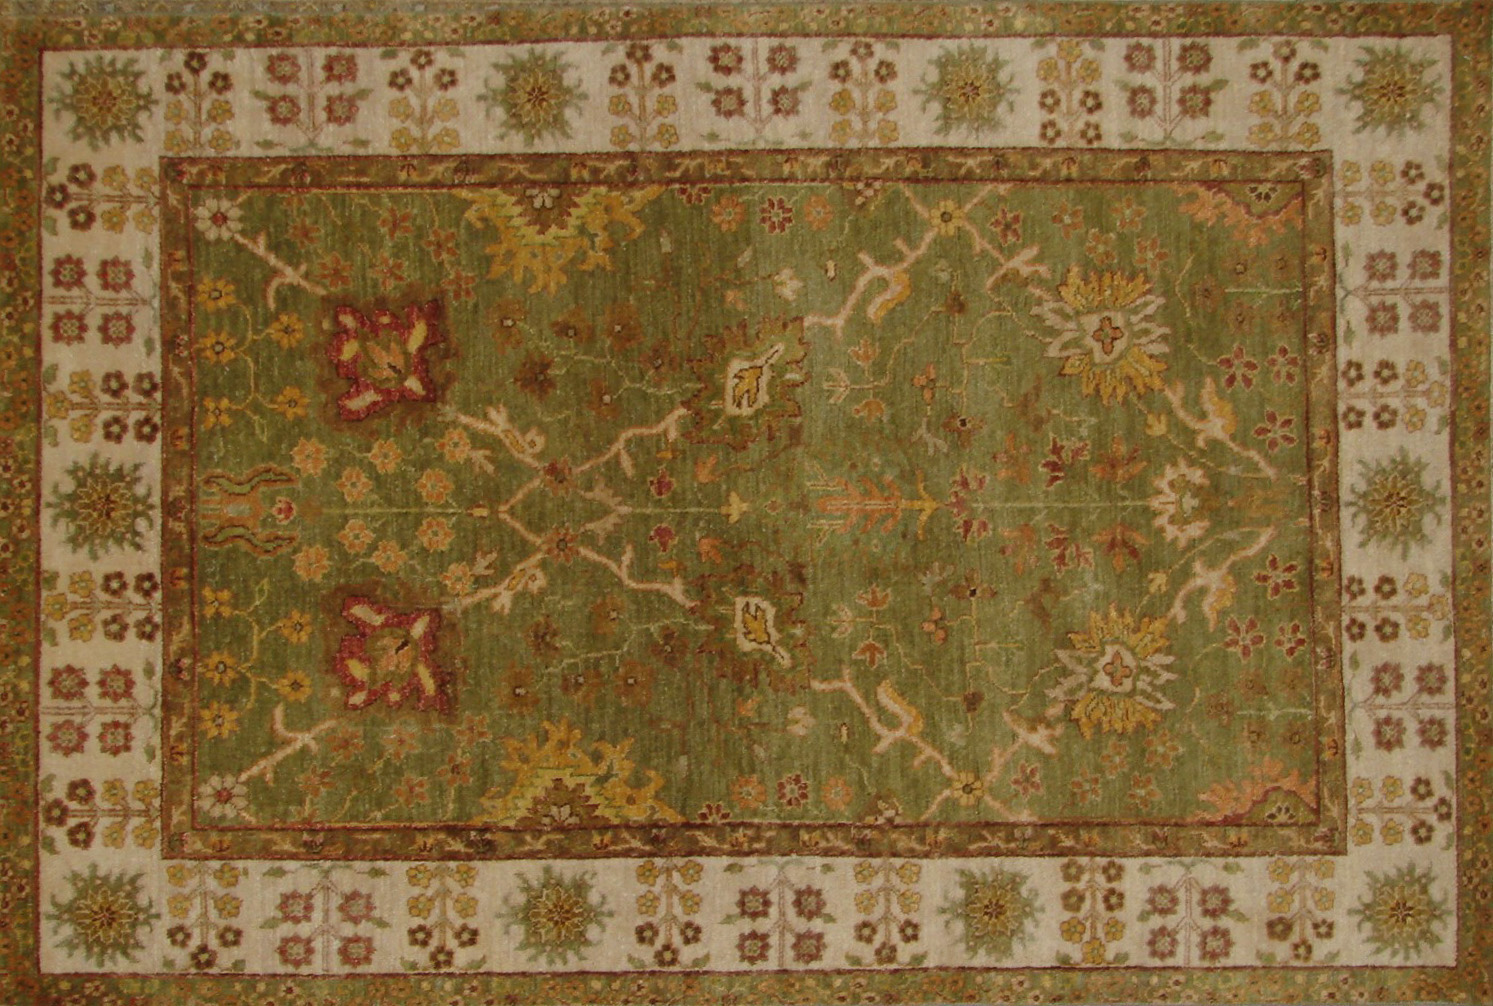 4x6 Traditional Hand Knotted Wool Area Rug - MR21130